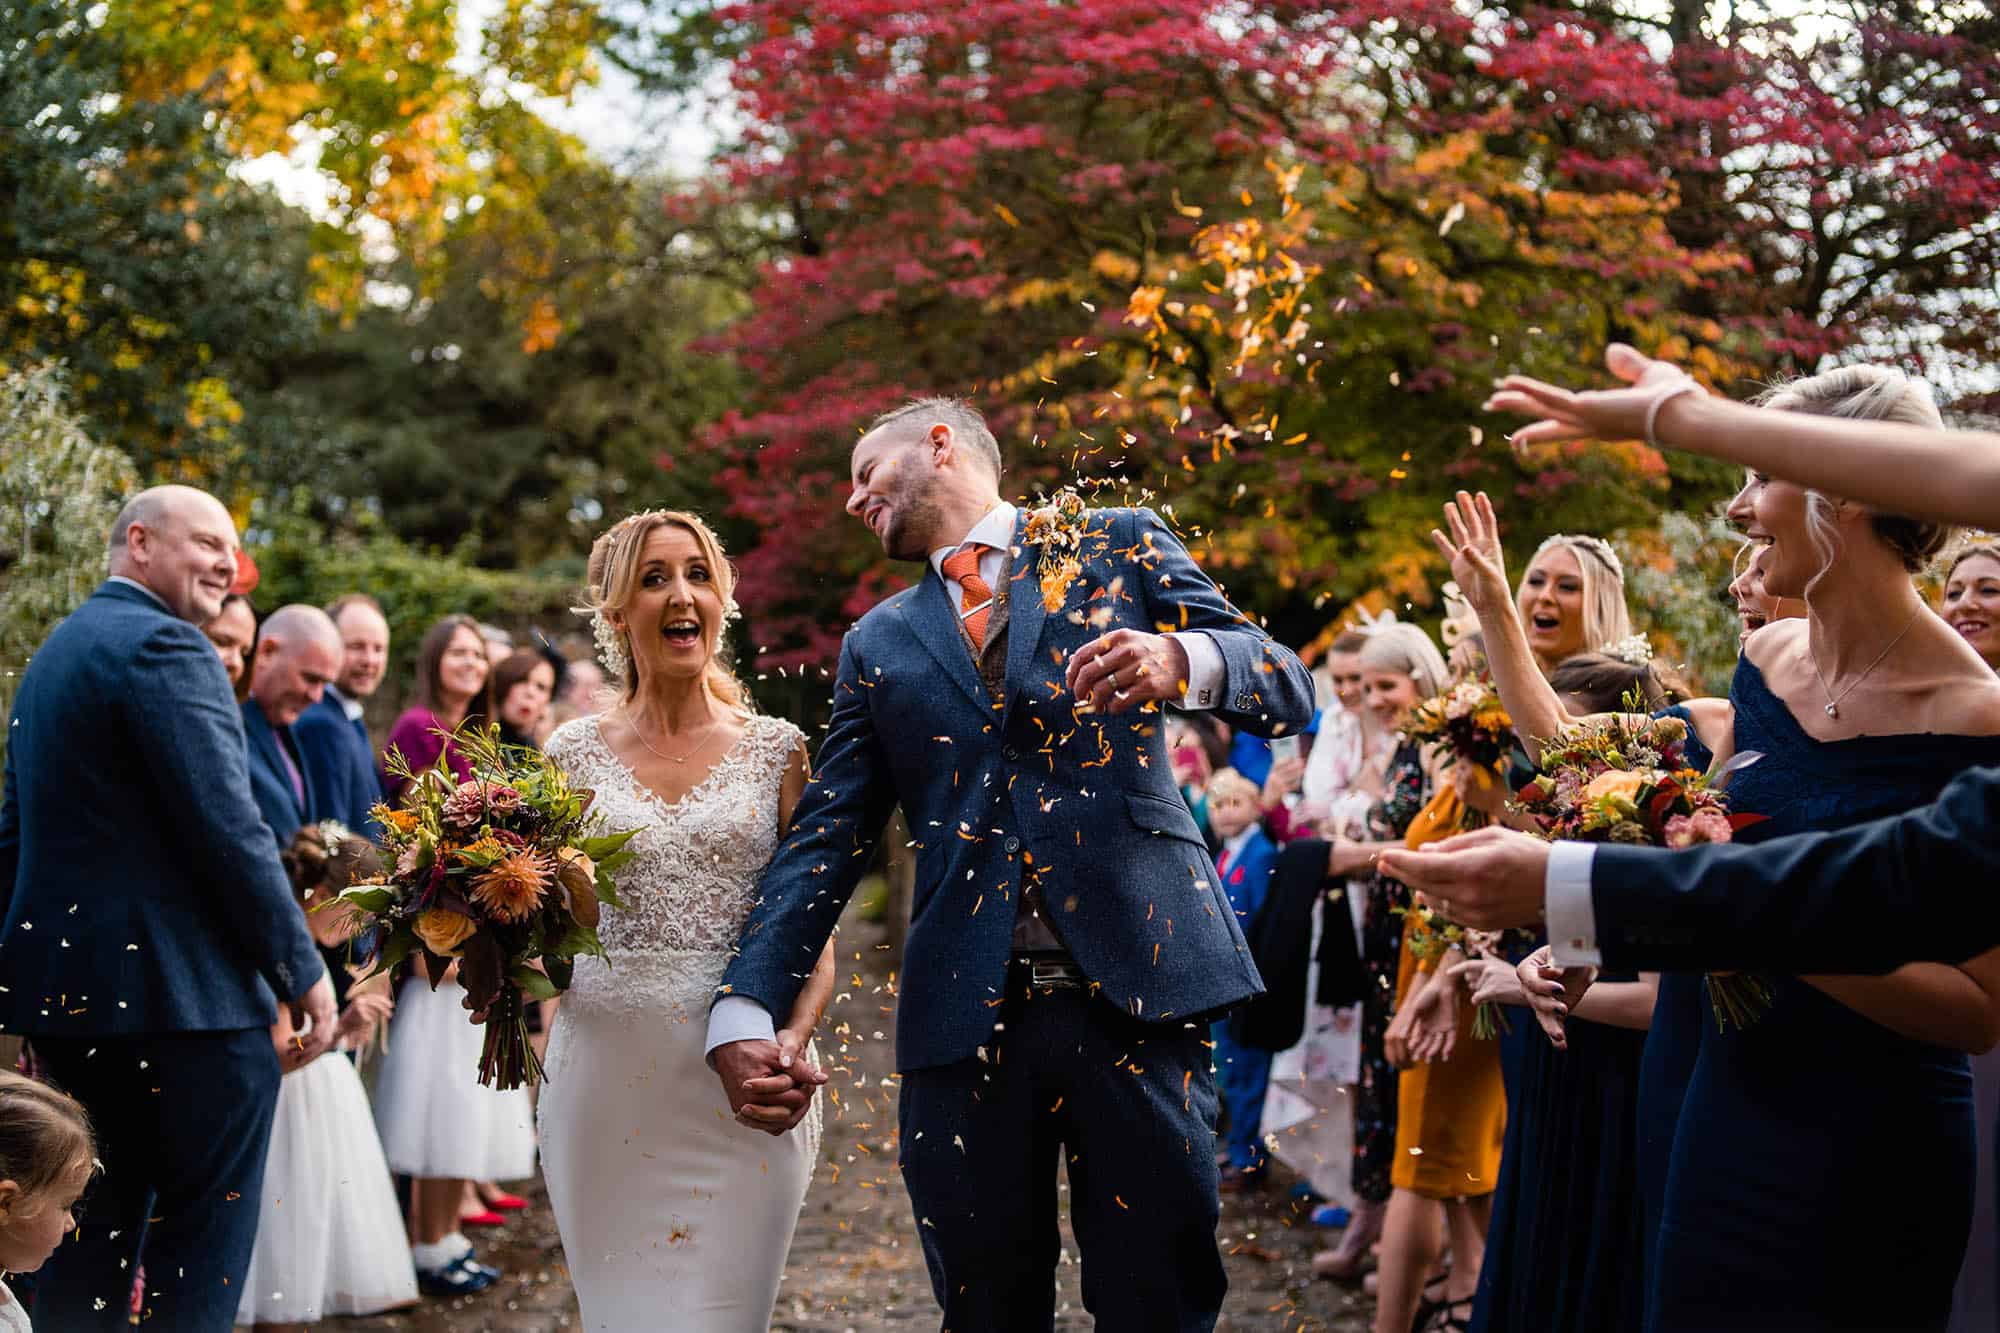 guests throwing confetti at Wyresdale Park